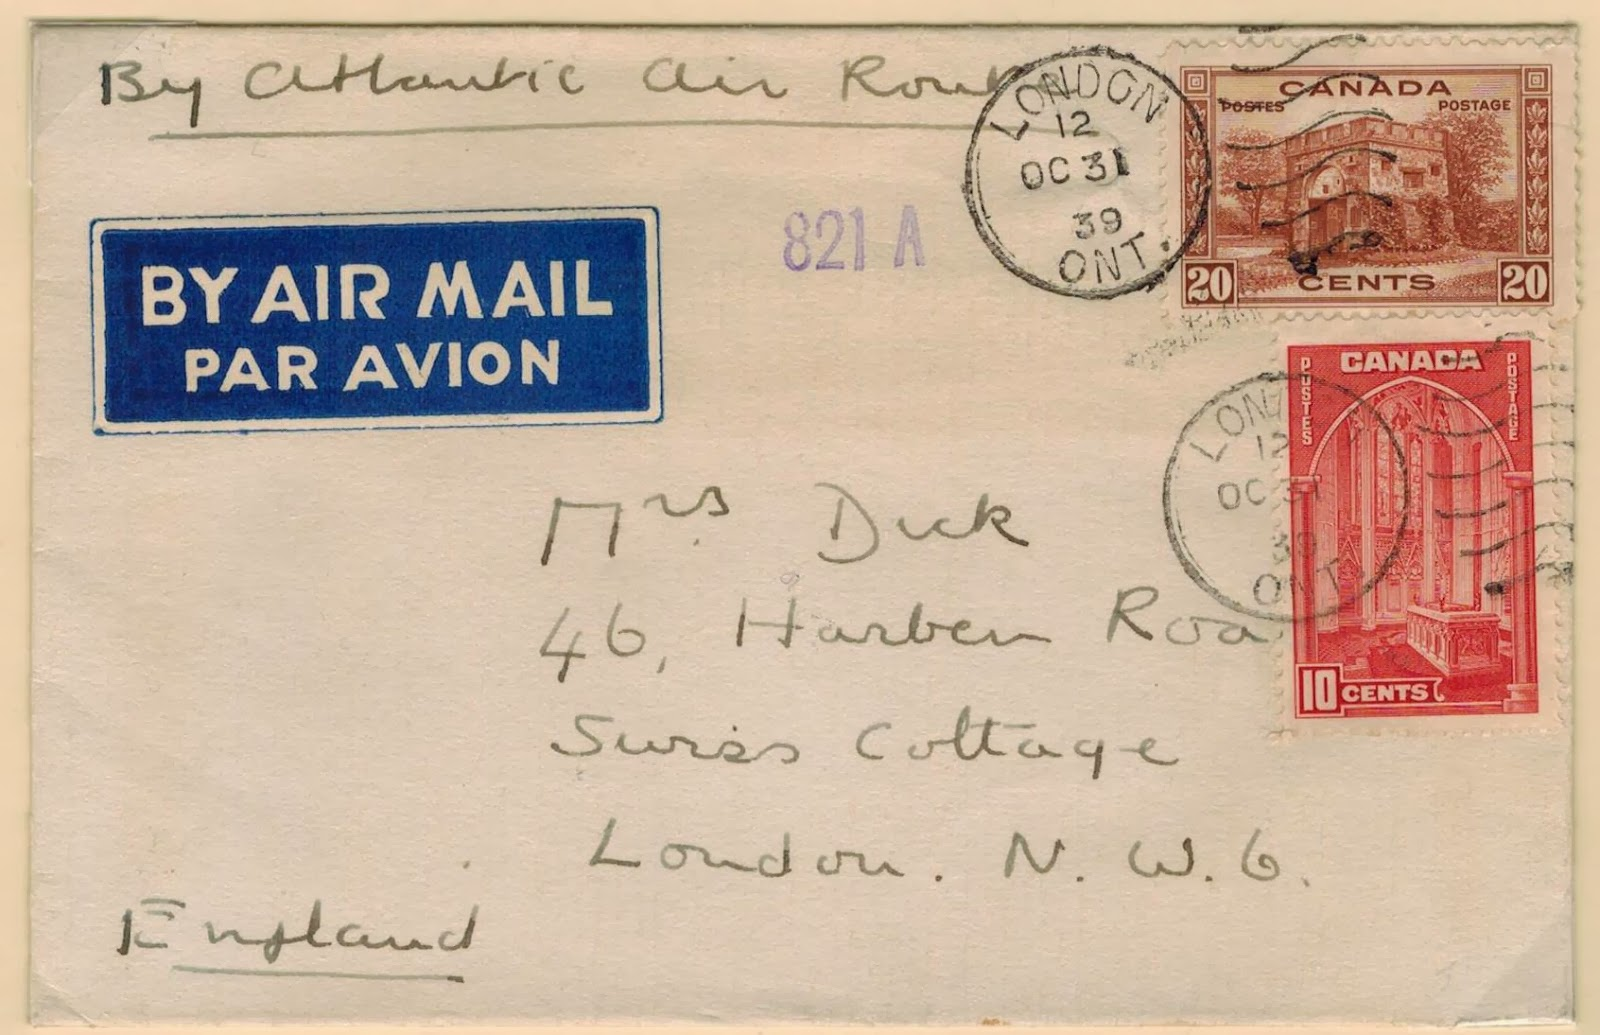 trans atlantic mail service between canada and britain was only inaugurated in mid 1939 from the late 1920s to 1939 air mail letters to the united kingdom